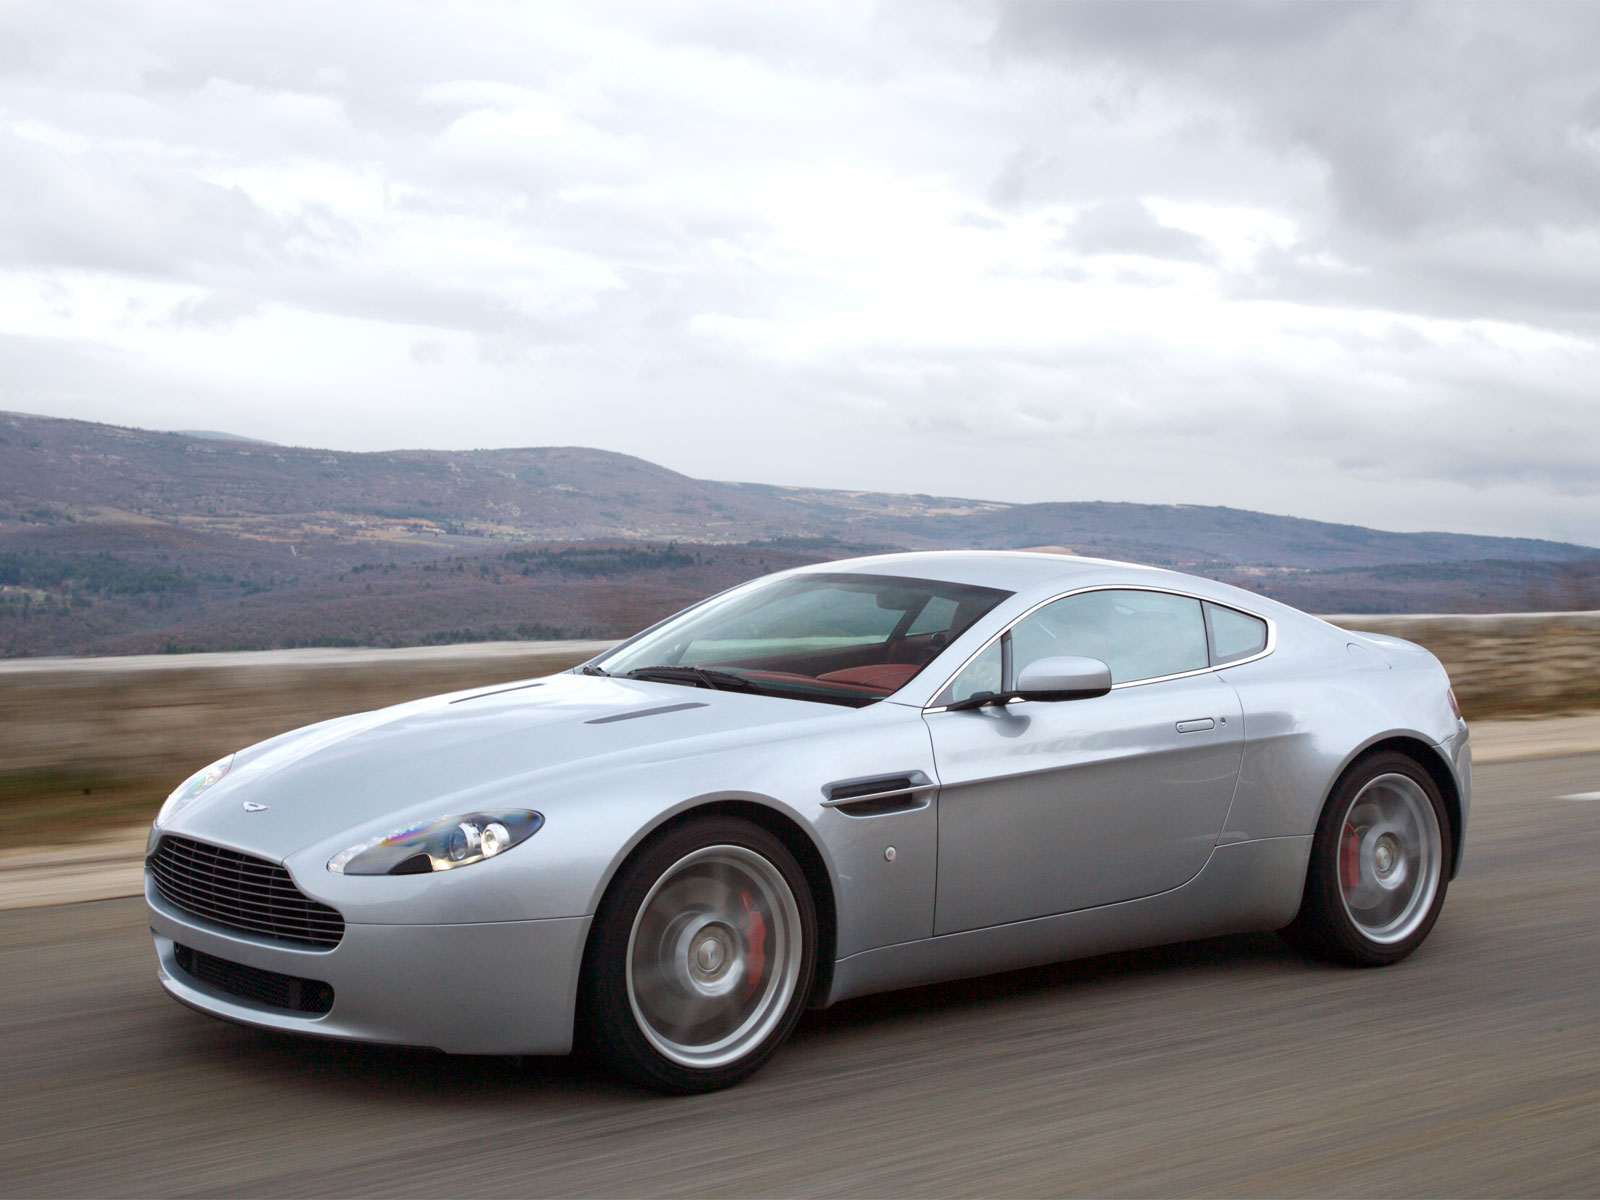 2007 aston martin db7 vantage – pictures, information and specs